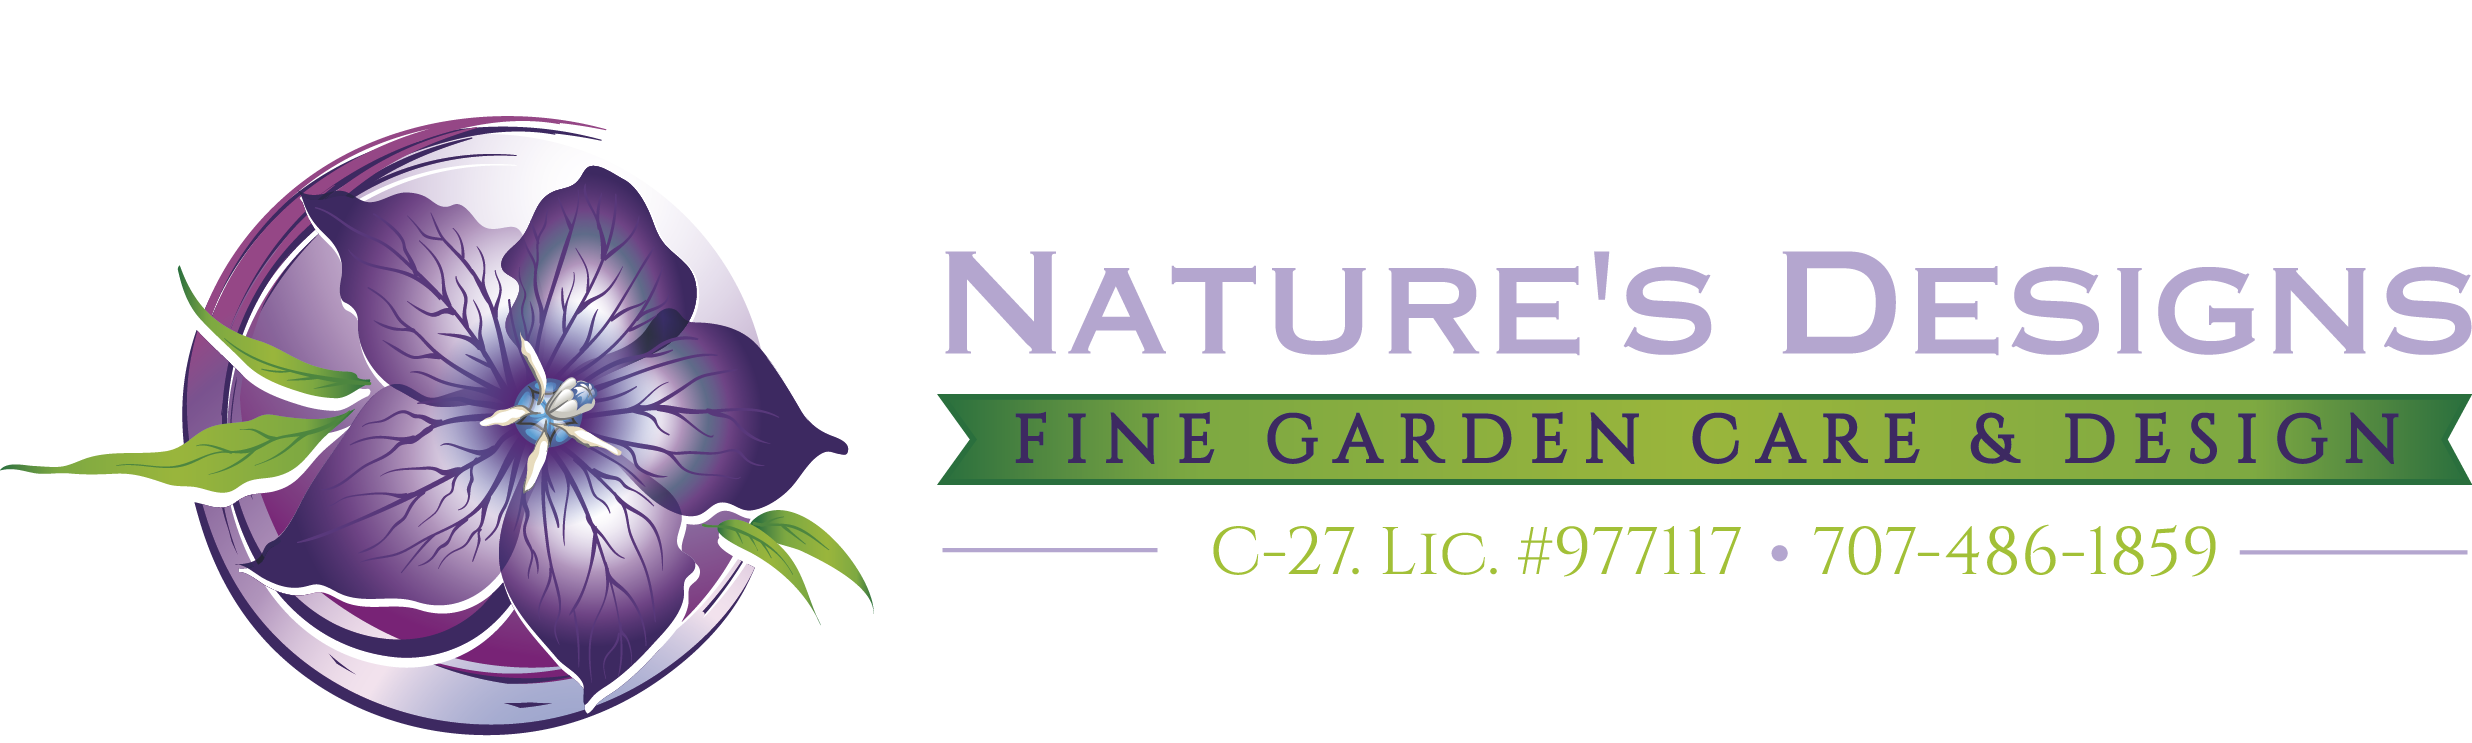 Create a Purple flower logo for Nature's Designs, a sustainable garden design company